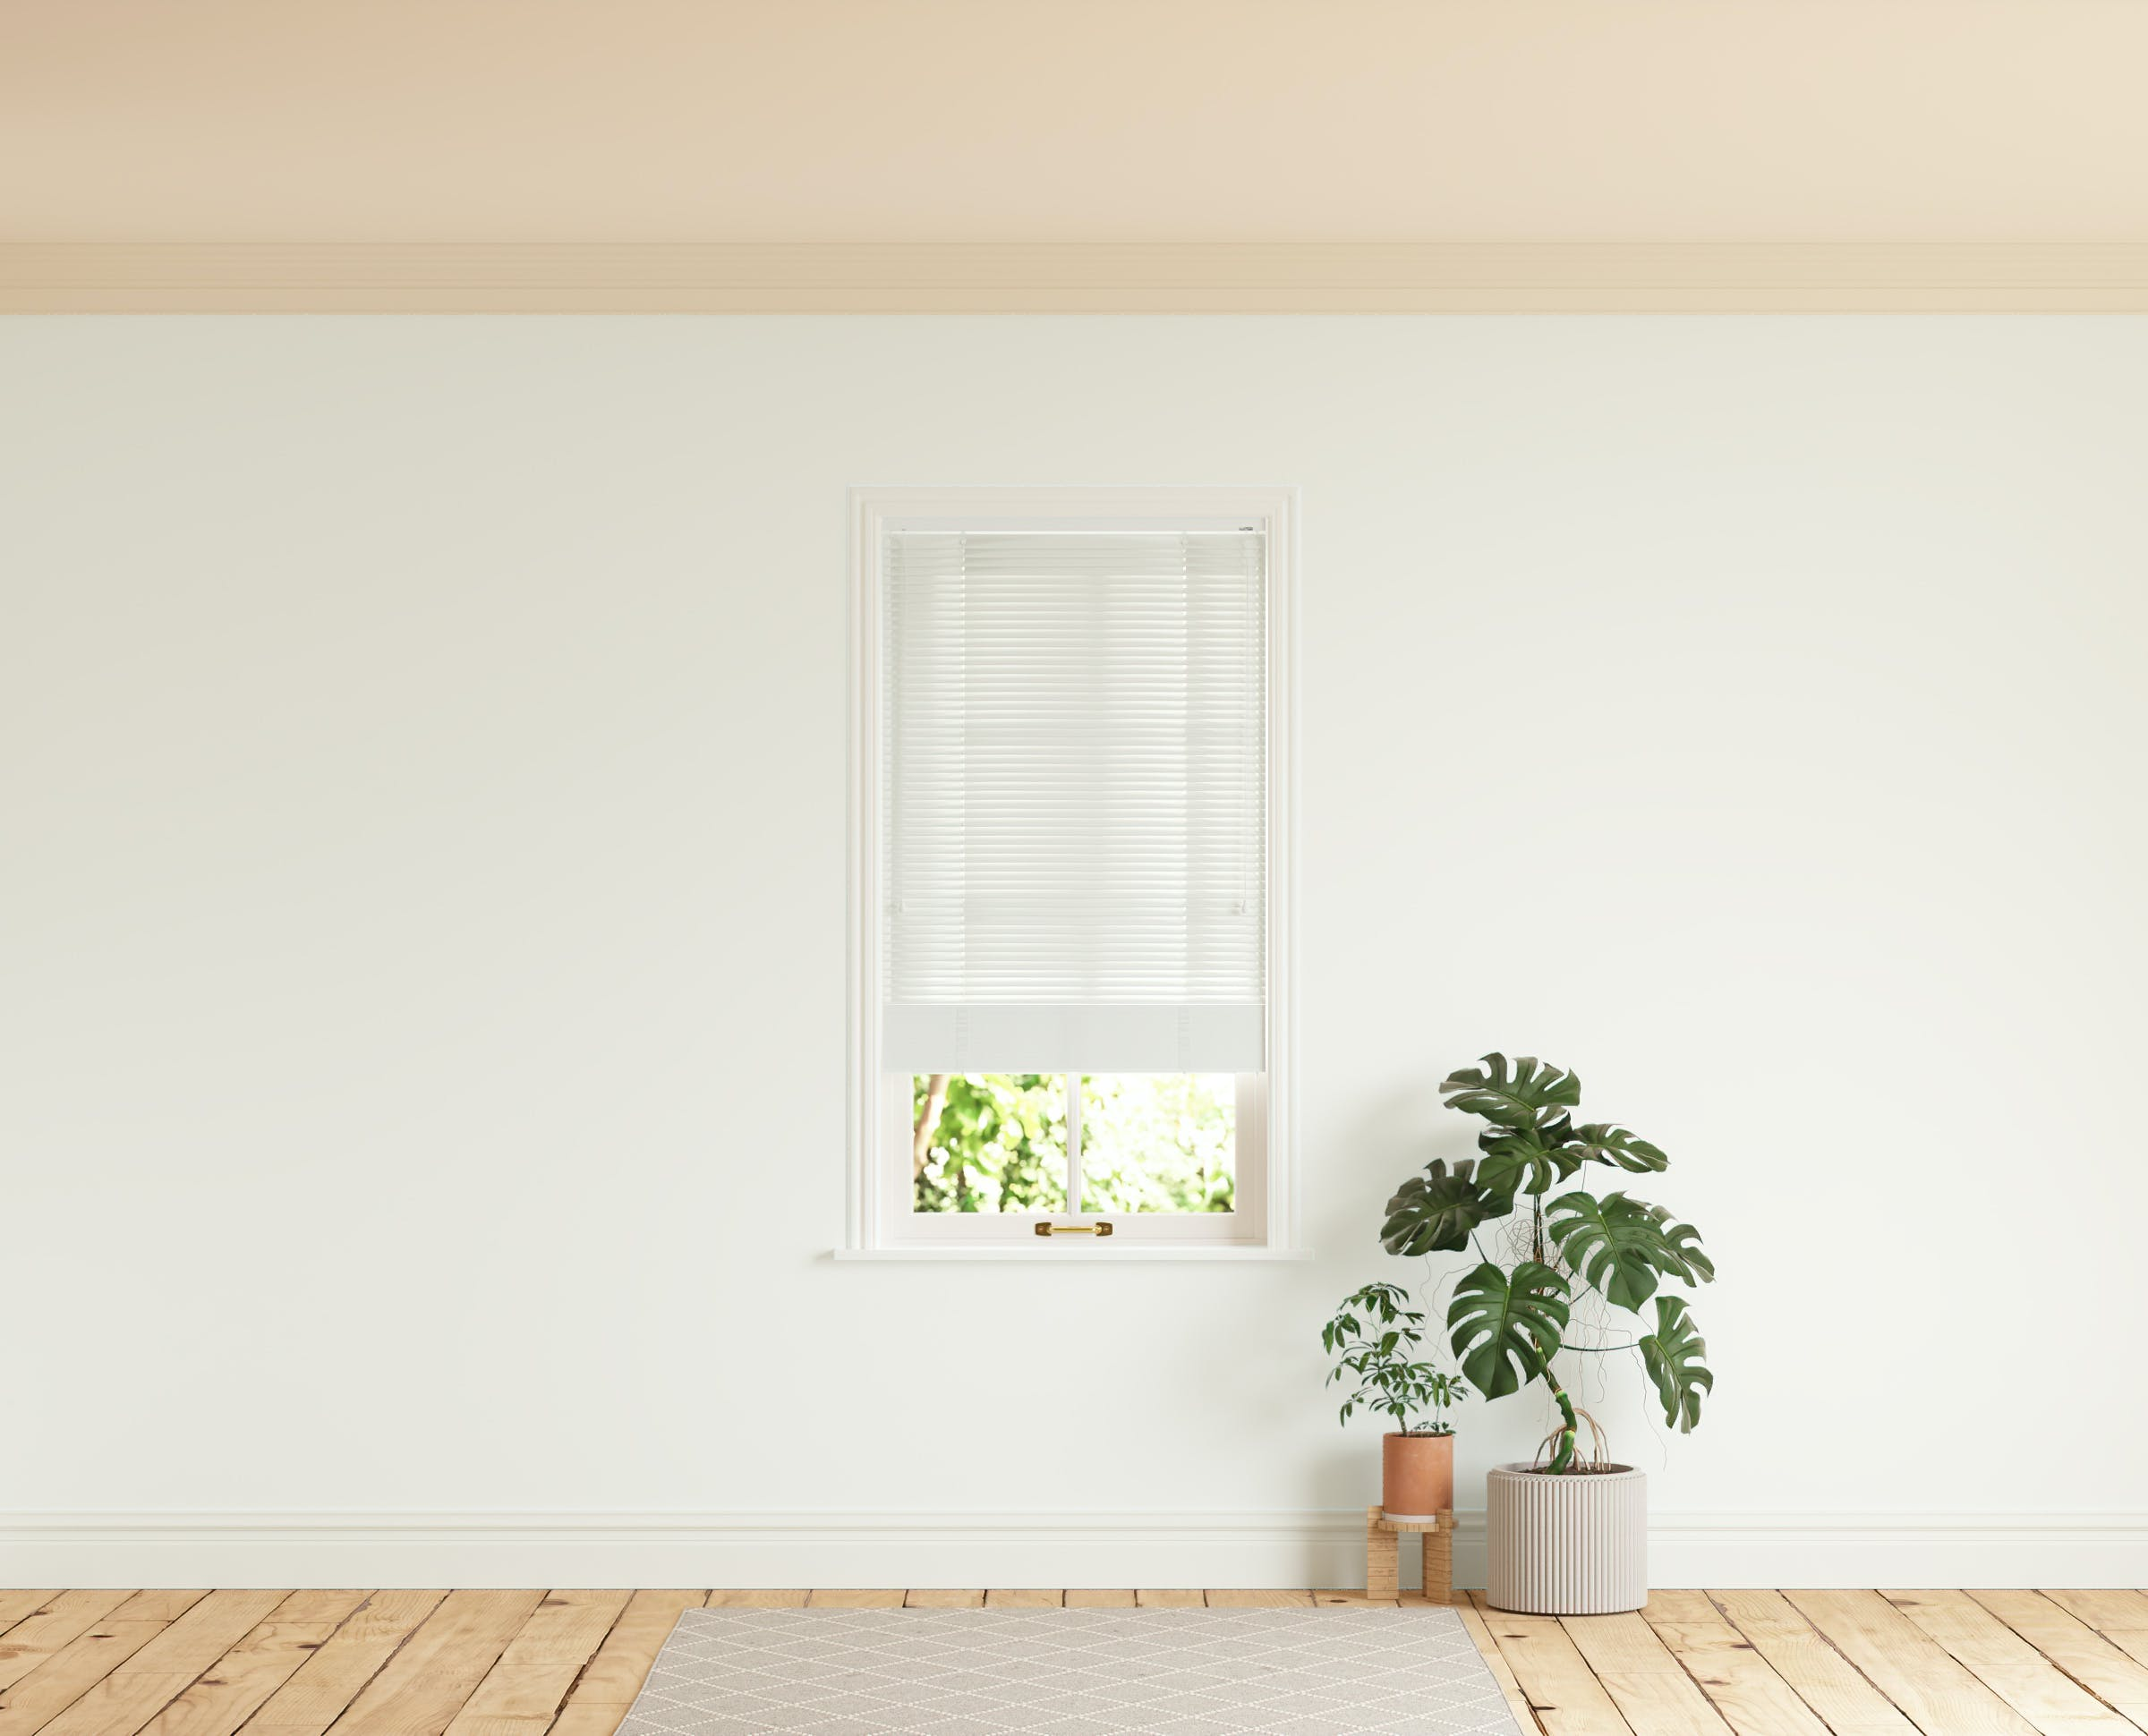 Room with walls painted in Lick White 01 and White 01 Venetian fine grain blinds